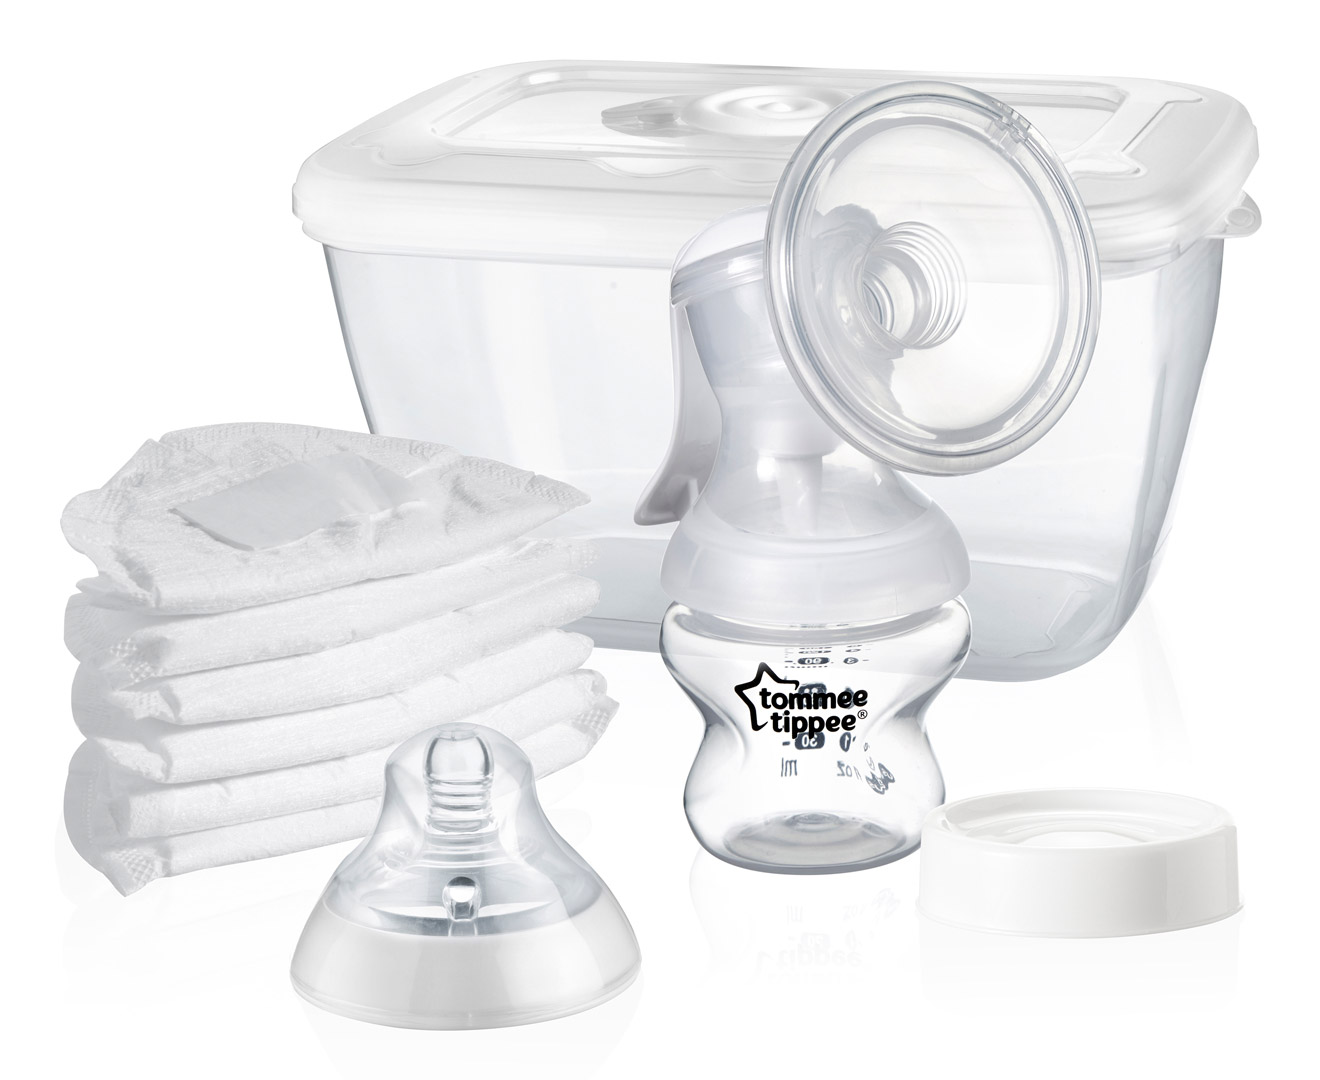 tommee tippee closer to nature manual breast pump kit great daily deals at australia 39 s. Black Bedroom Furniture Sets. Home Design Ideas